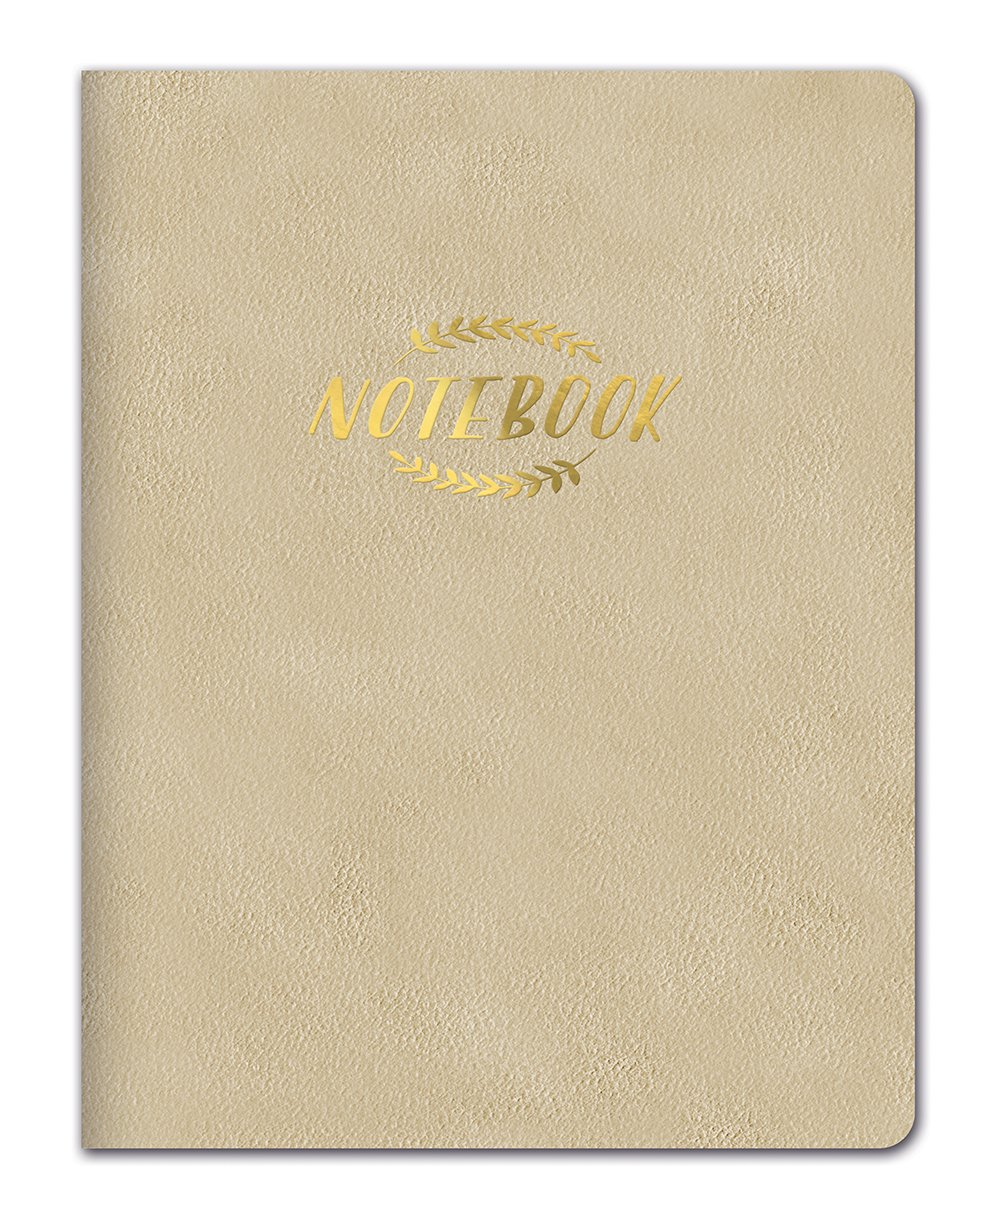 Studio Oh. Large leatheresque Classic Classic Classic Tagebuch Notebook, schwarz Klassisches Notizbuch Gold B072LYDJ1Y | Beliebte Empfehlung